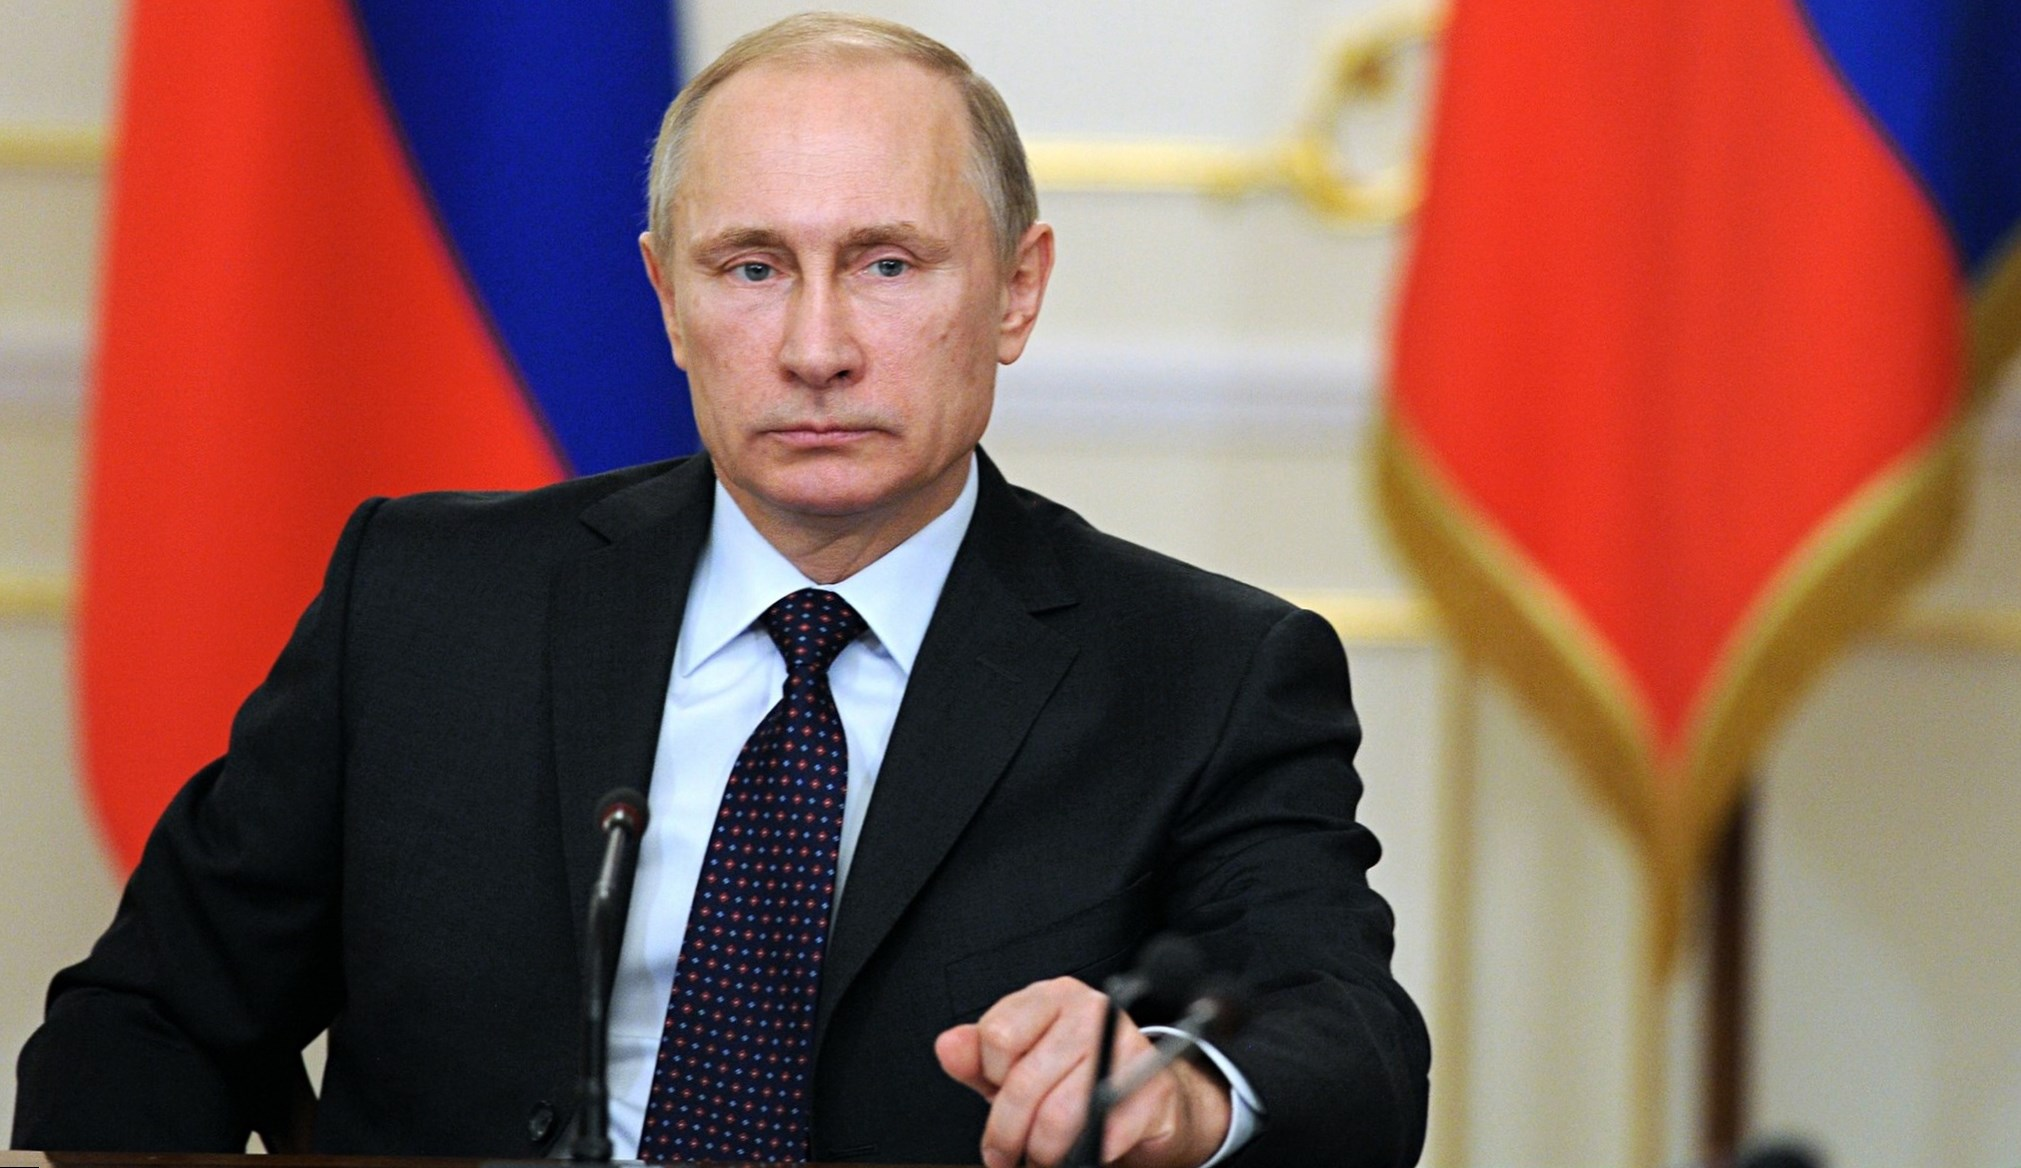 Putin will participate for the fourth time in the presidential election.